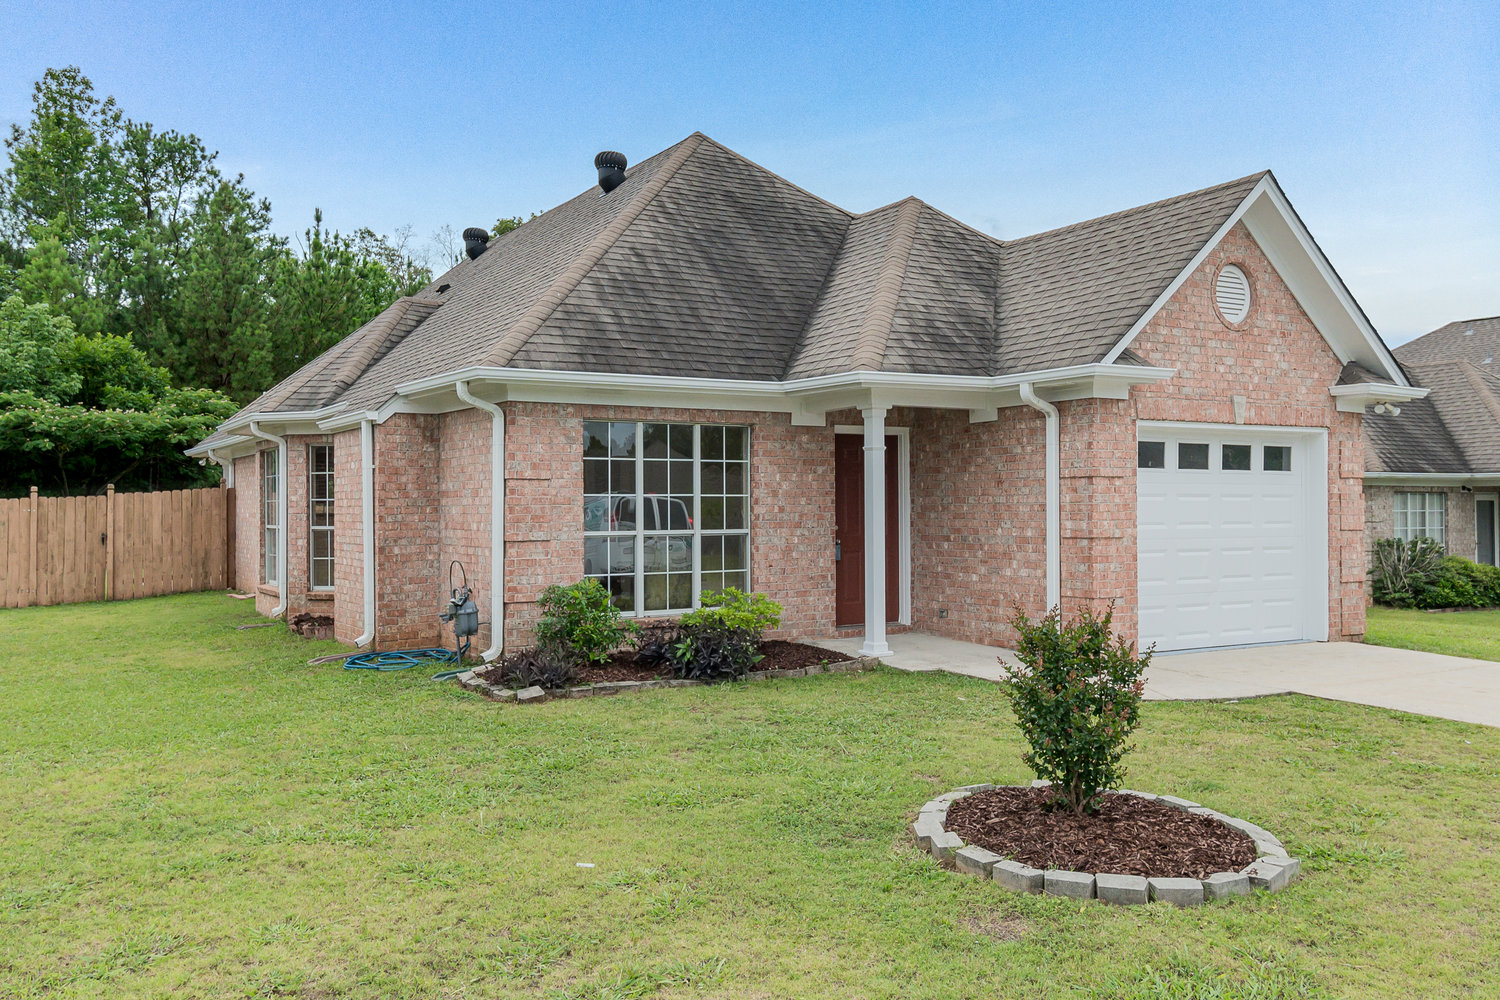 Virtual Tour of Birmingham Metro Real Estate Listing For Sale | 432 Daventry Circle, Calera, AL 35040